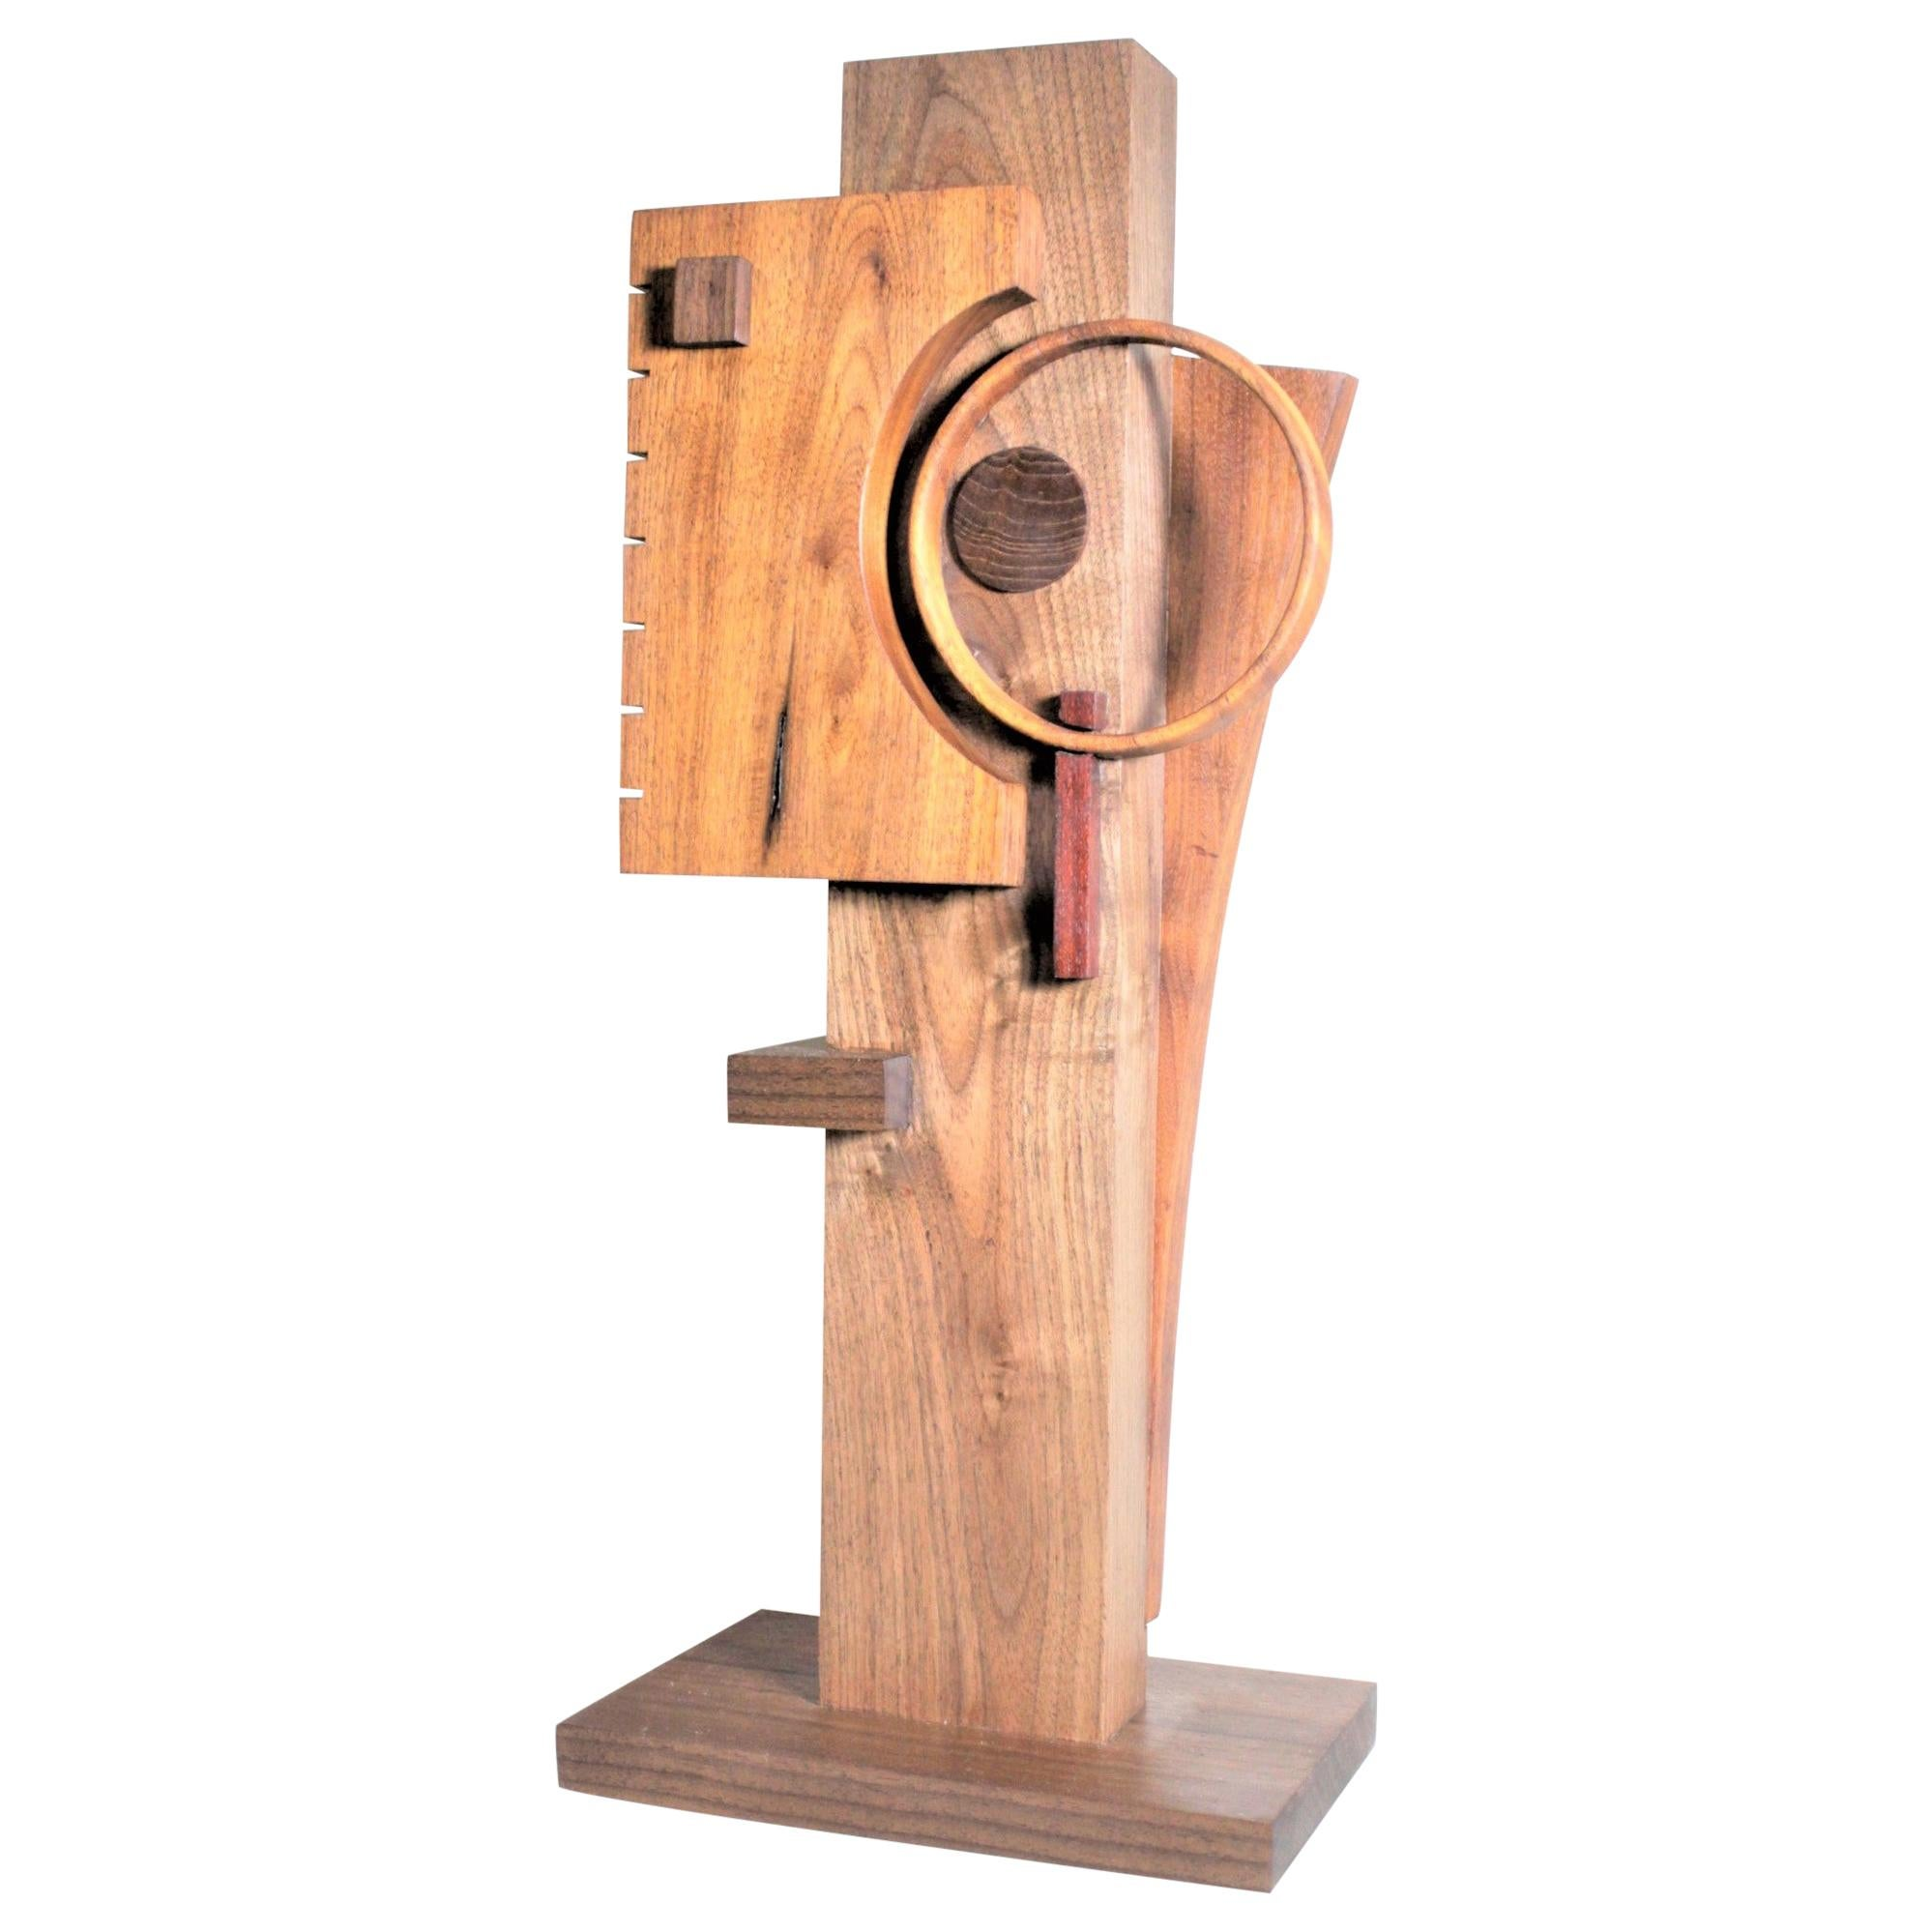 Signed Modern Abstract Constructivist Styled Wooden Sculpture